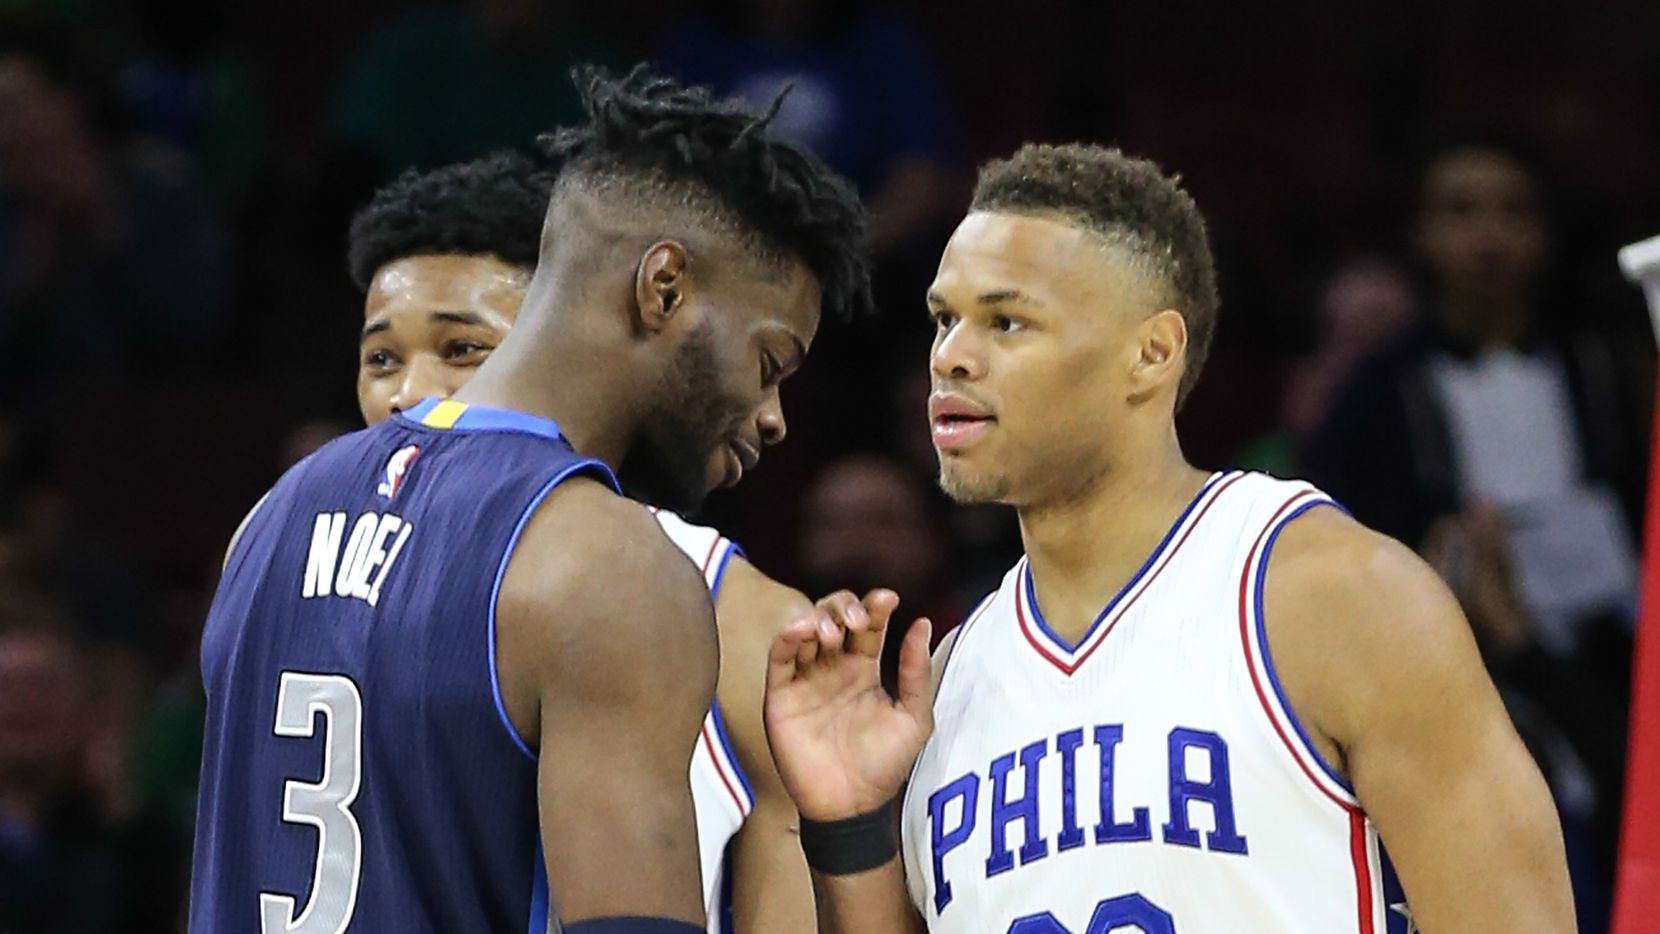 The Philadelphia 76ers' Justin Anderson (23) chats with the Dallas Mavericks' Nerlens Noel (3), who he was recently traded for, during the first quarter at the Wells Fargo Center in Philadelphia on Friday, March 17, 2017. The Sixers won, 116-74. (Steven M. Falk/Philadelphia Inquirer/TNS)